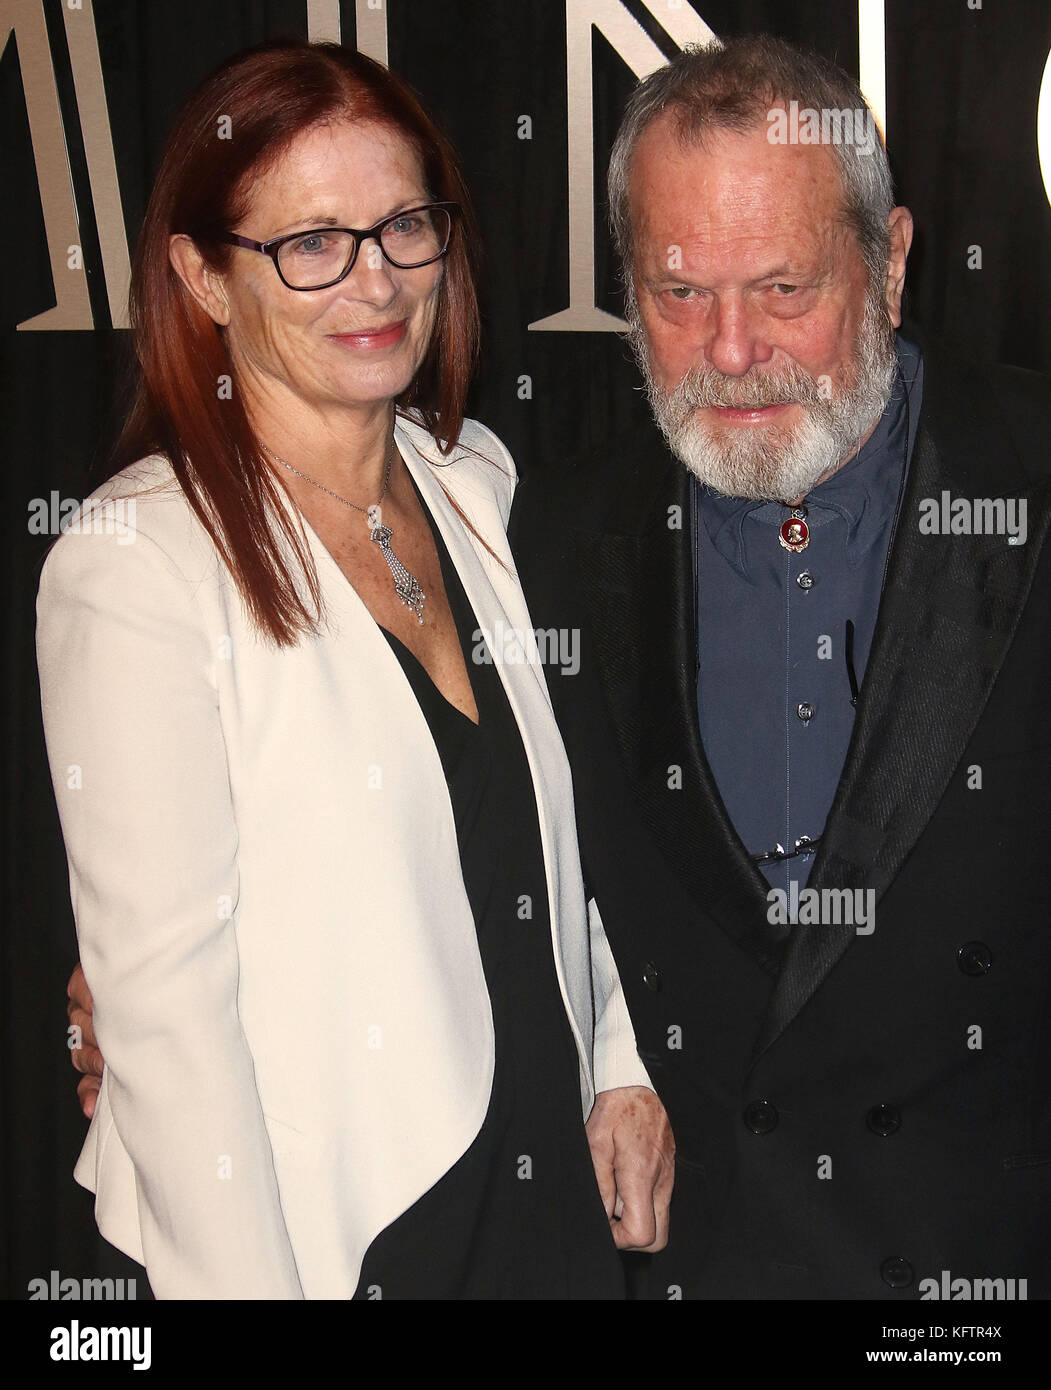 Oct 03, 2017 - Terry Gilliam and his wife Maggie Weston attending 'BFI Luminous Fundraising Gala at The Guildhall - Stock Image